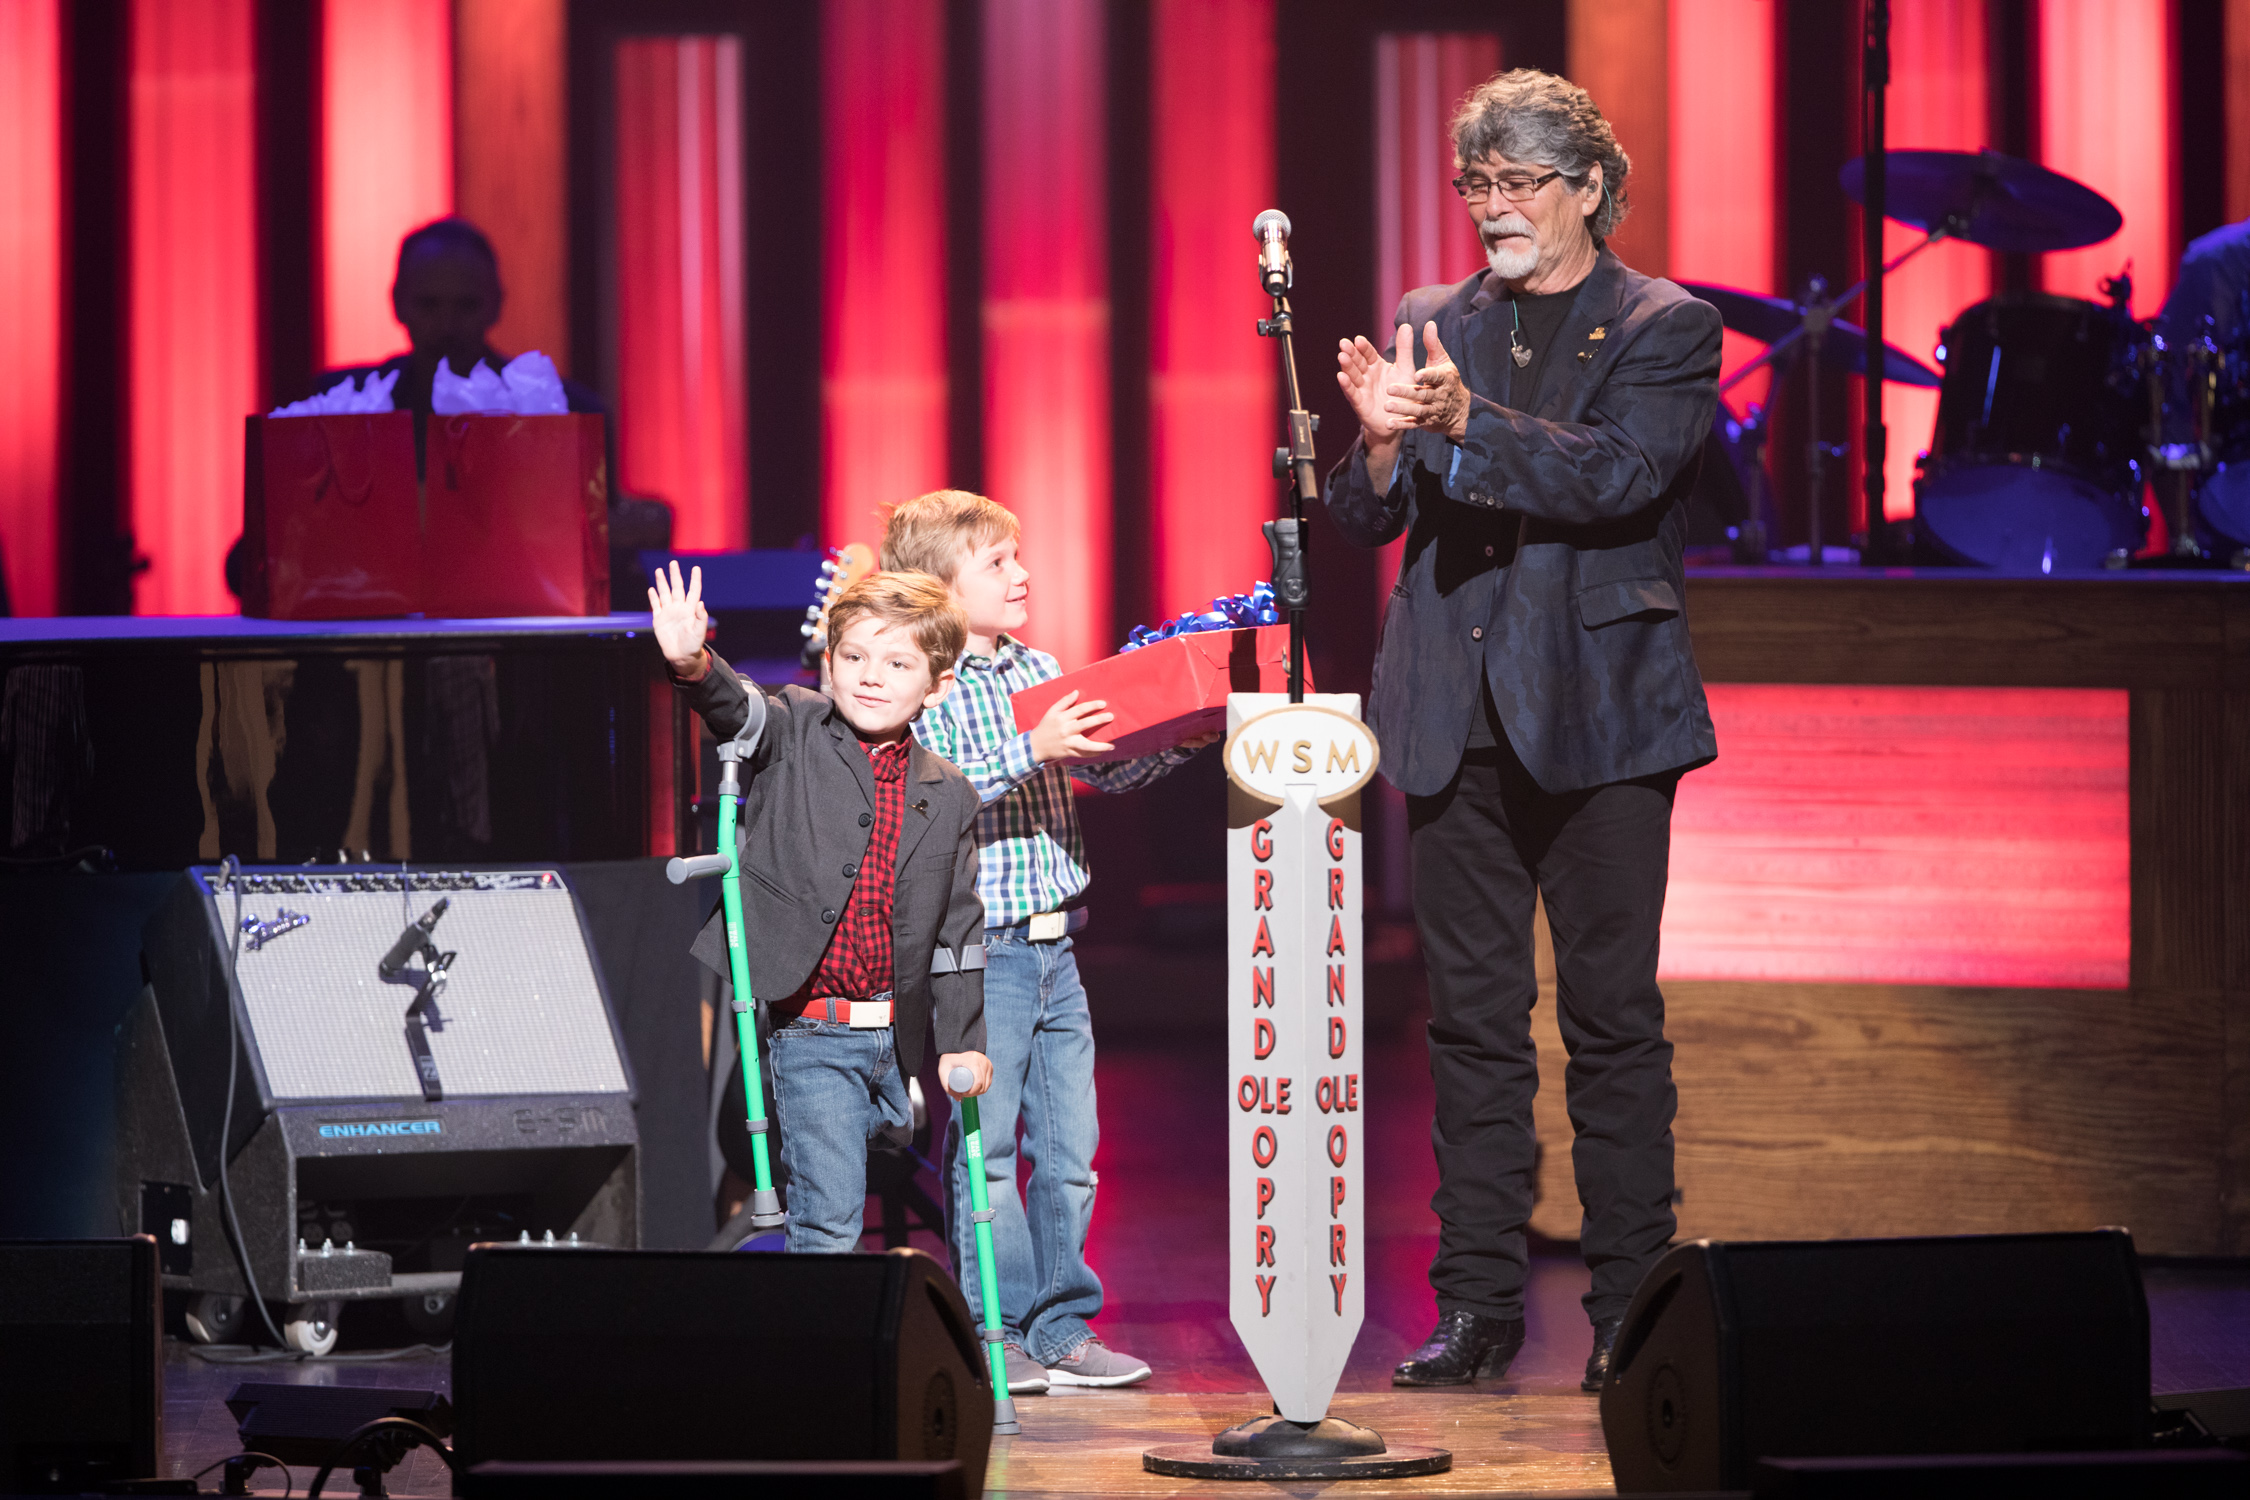 Alabama's Randy Owen with St. Jude patient Kael; Photo credit: Chris Hollo/Grand Ole Opry